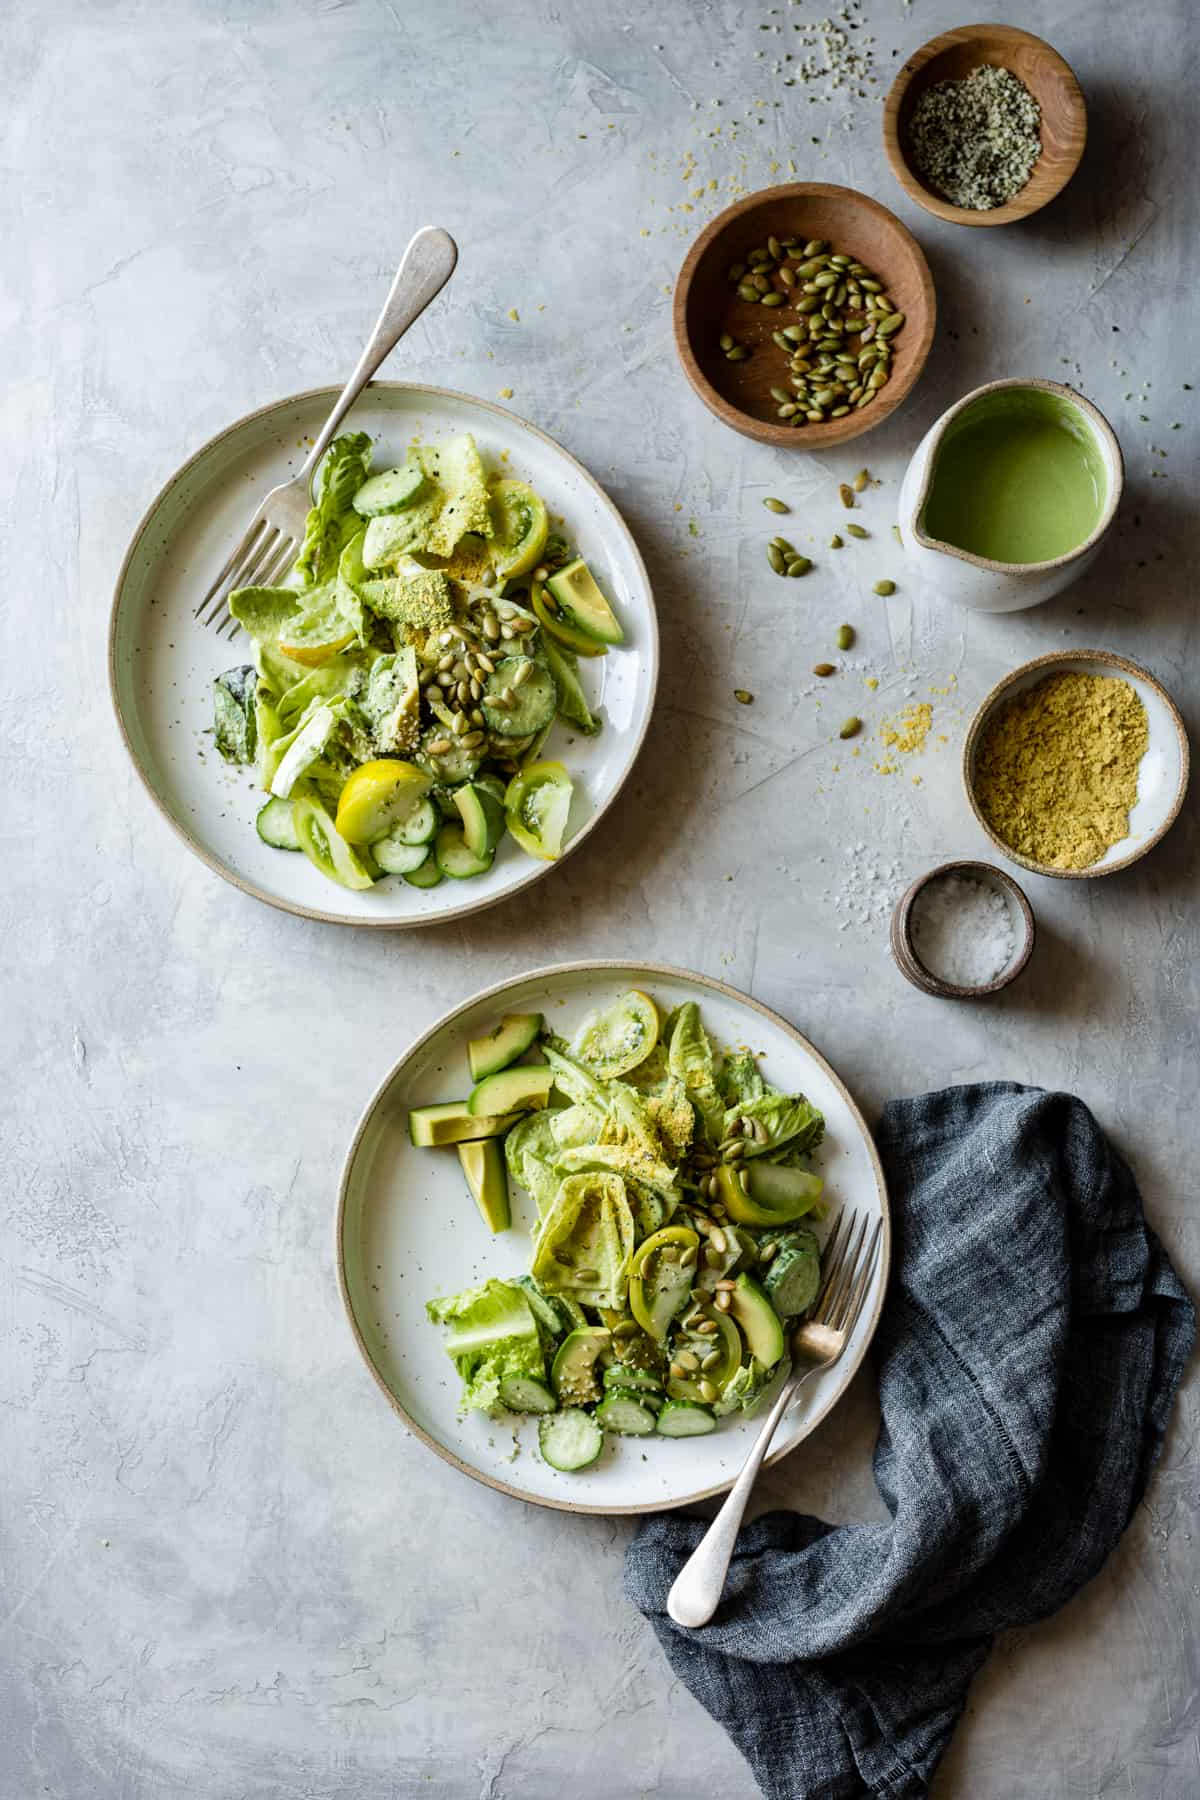 Summer Vegan Green Goddess Salad